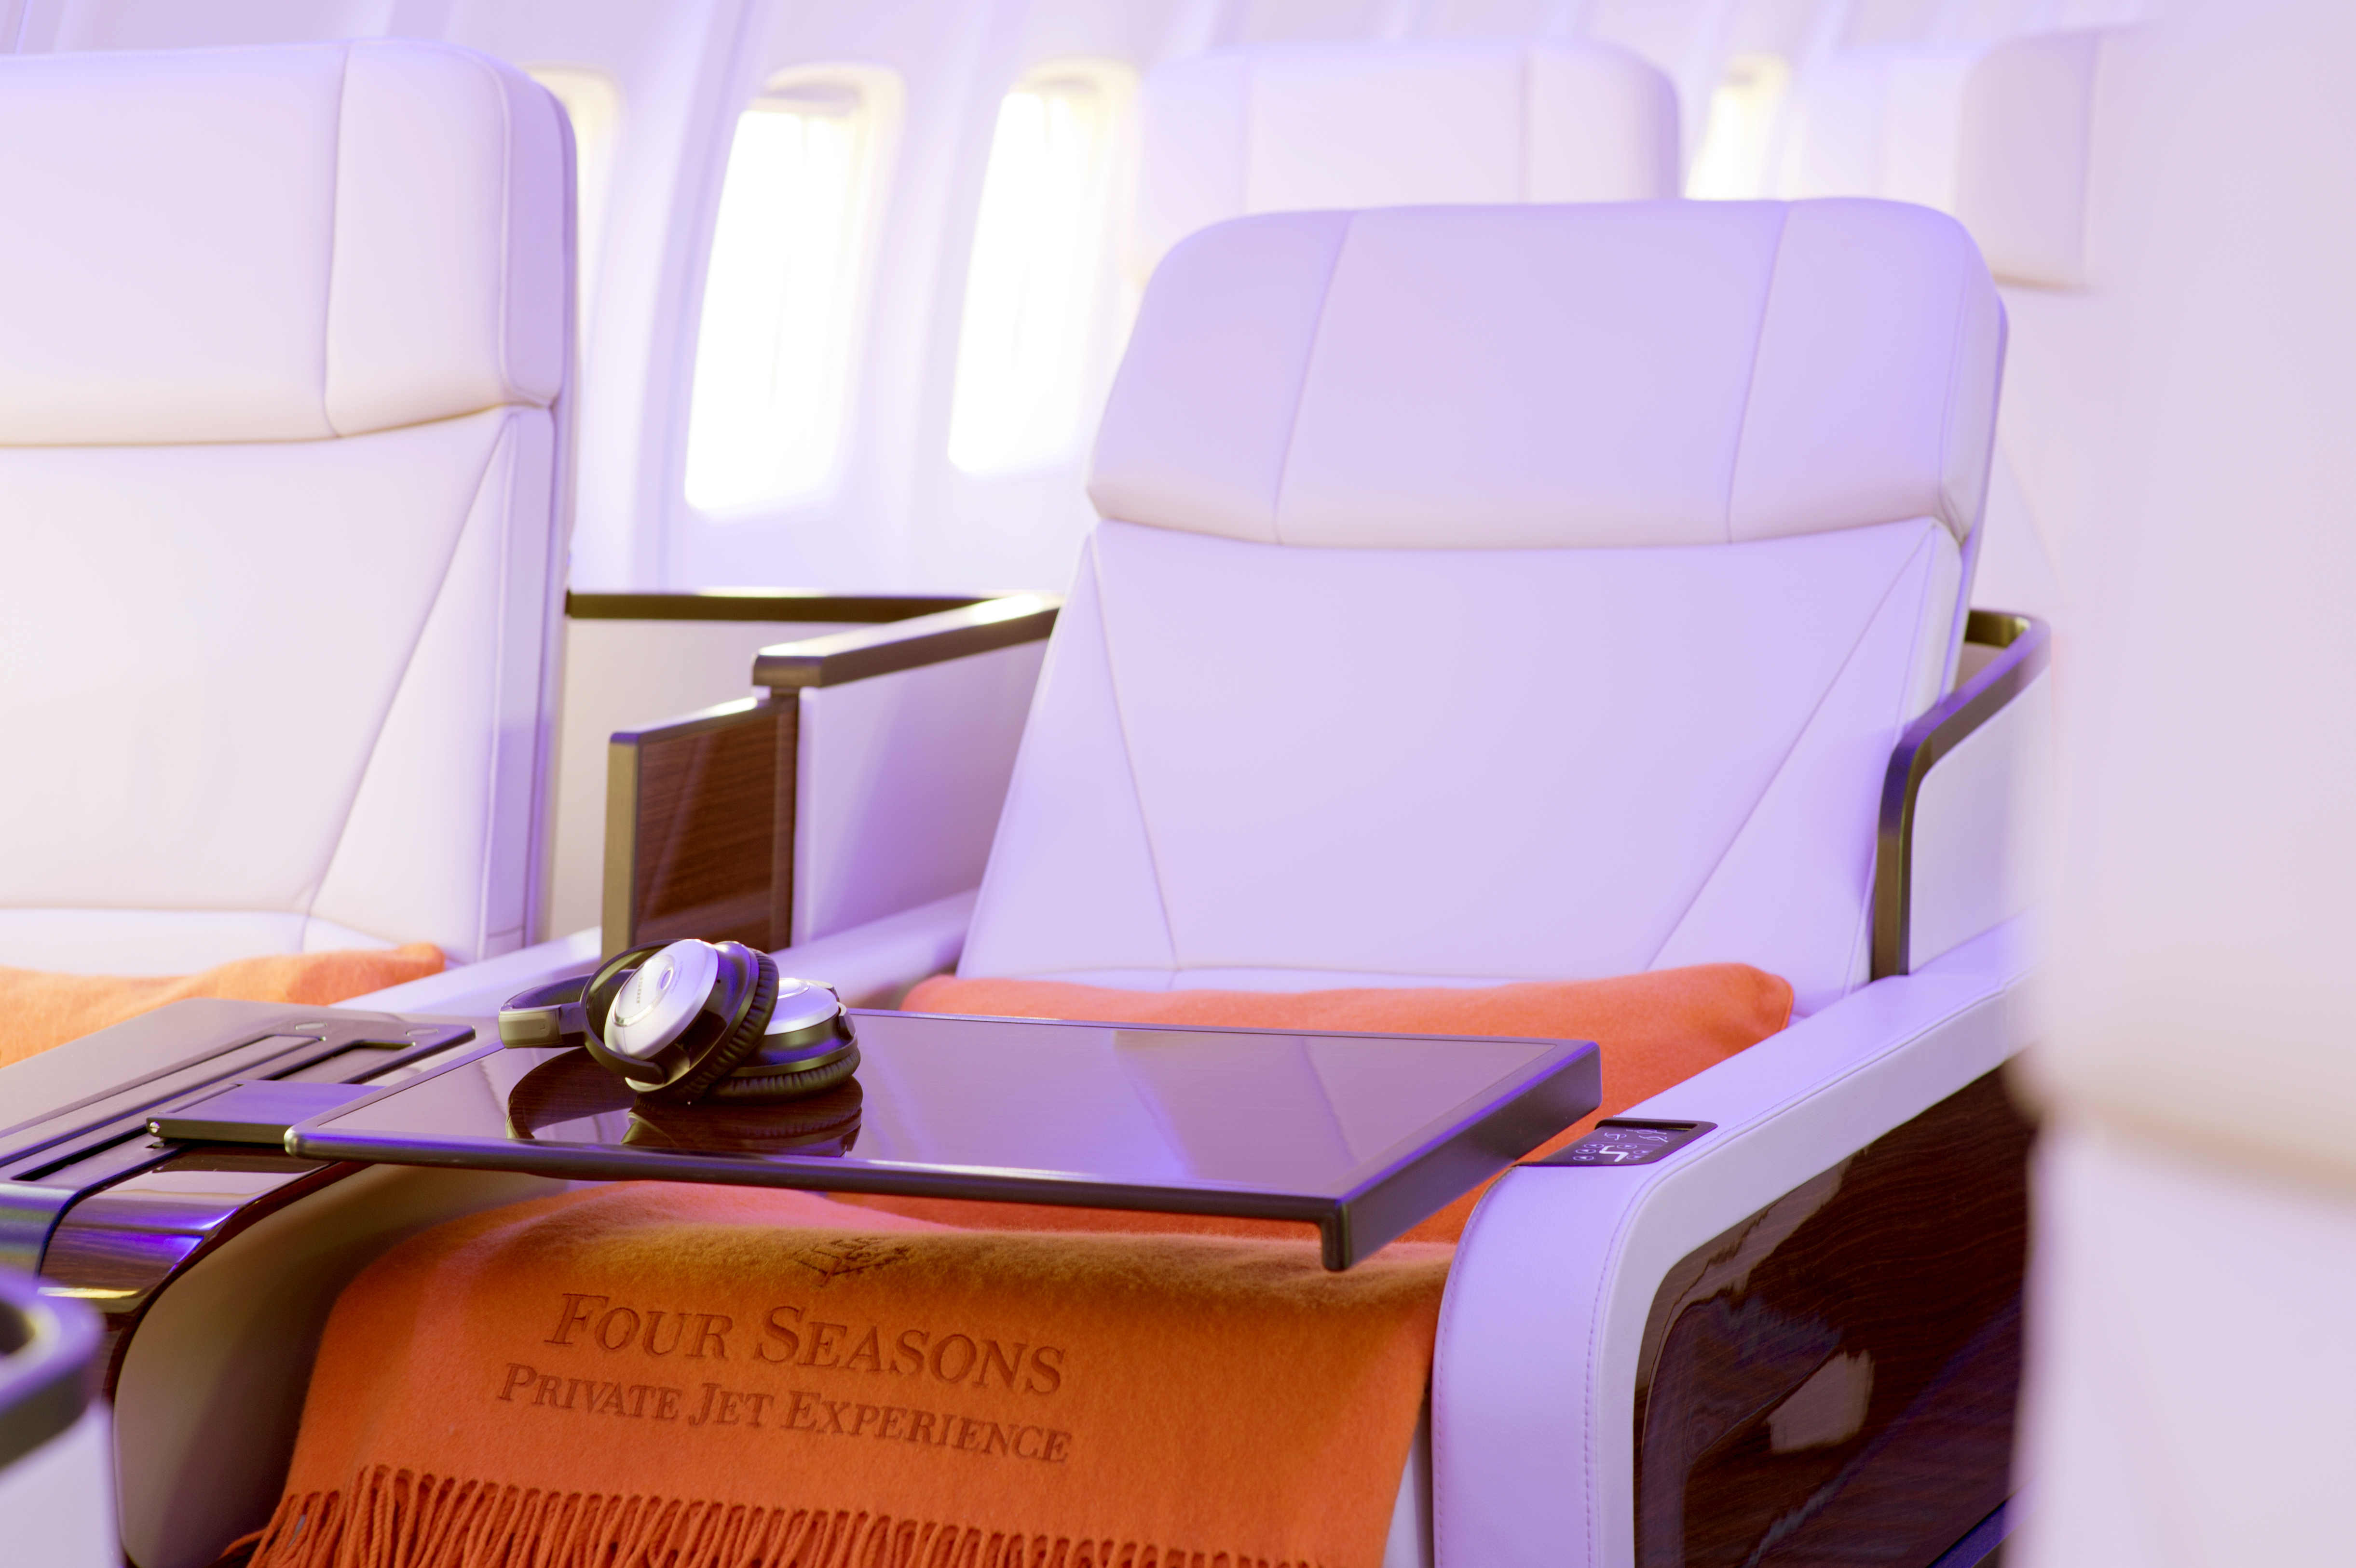 """TCS World Travel will offer exclusive access aboard the Four Seasons Private Jet on all of its """"Select Escapes"""" journeys around the world. The new Boeing 757 jet features a contemporary design and luxurious finishes. (Photo: Business Wire)"""